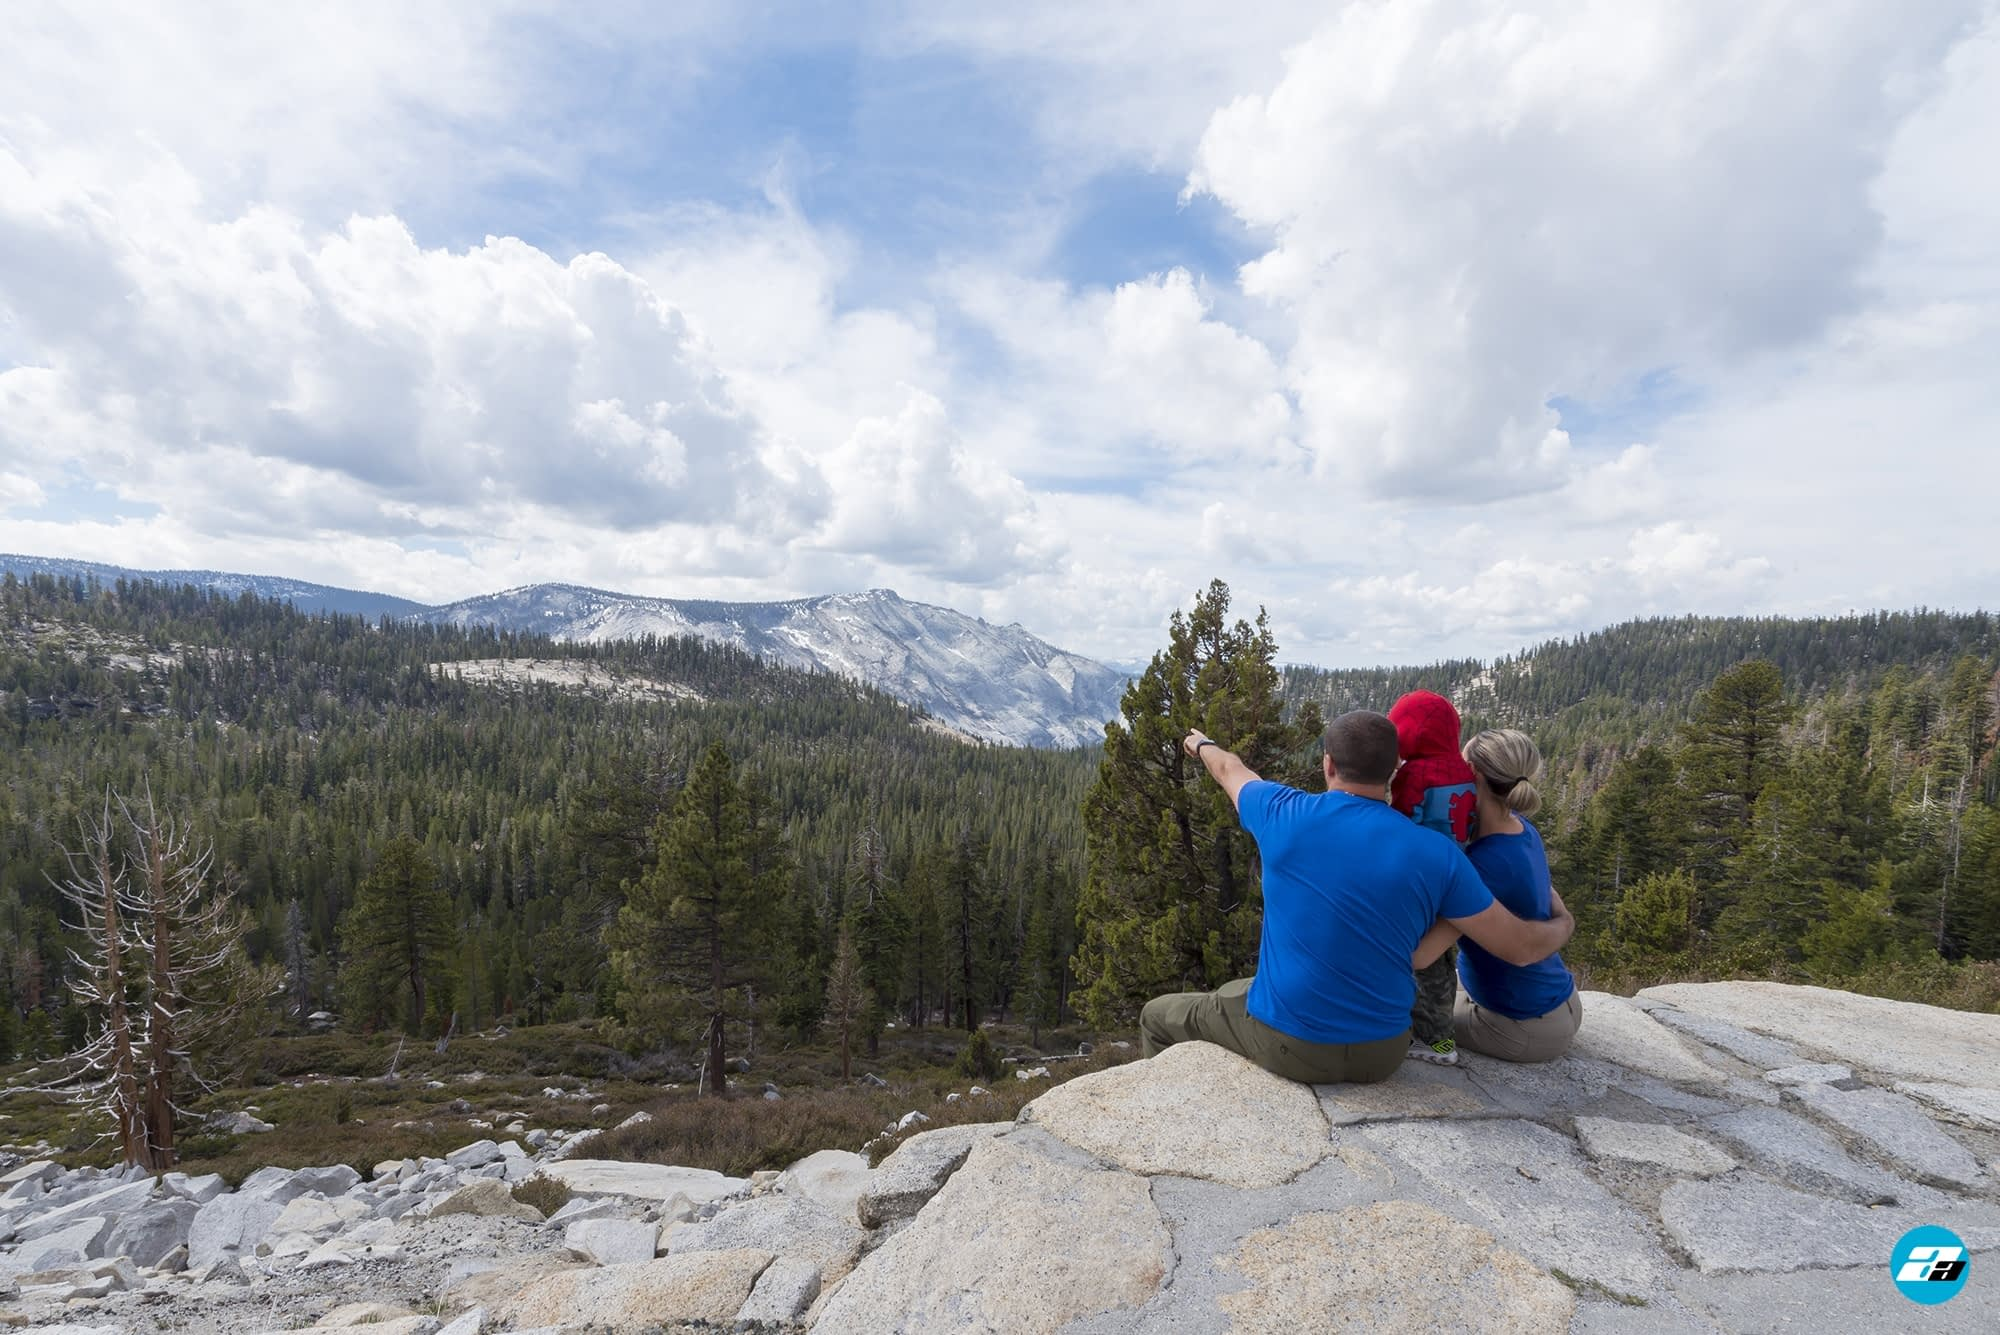 Yosemite National Park, California, USA. Landscape. Mountain View. Forest. Family